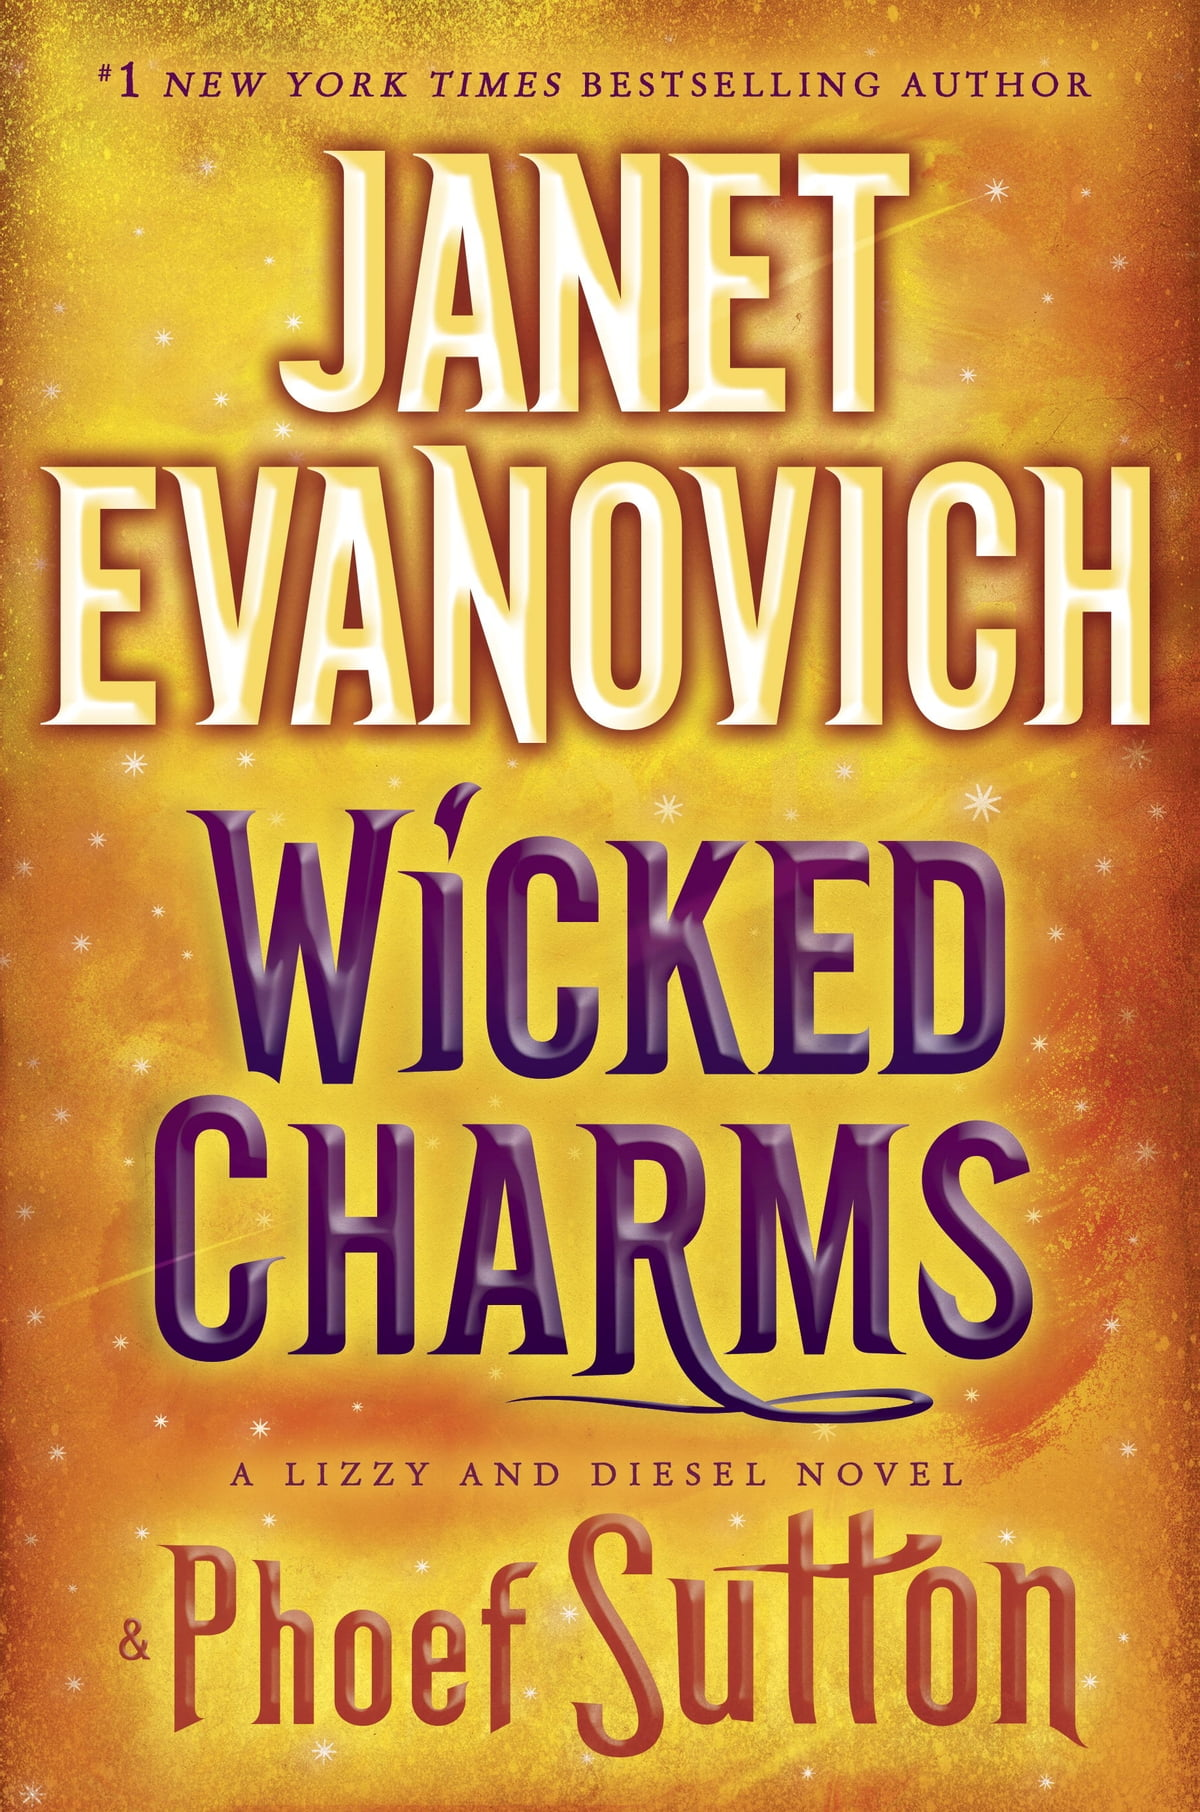 Wicked Charms  A Lizzy And Diesel Novel Ebook By Janet Evanovich, Phoef  Sutton